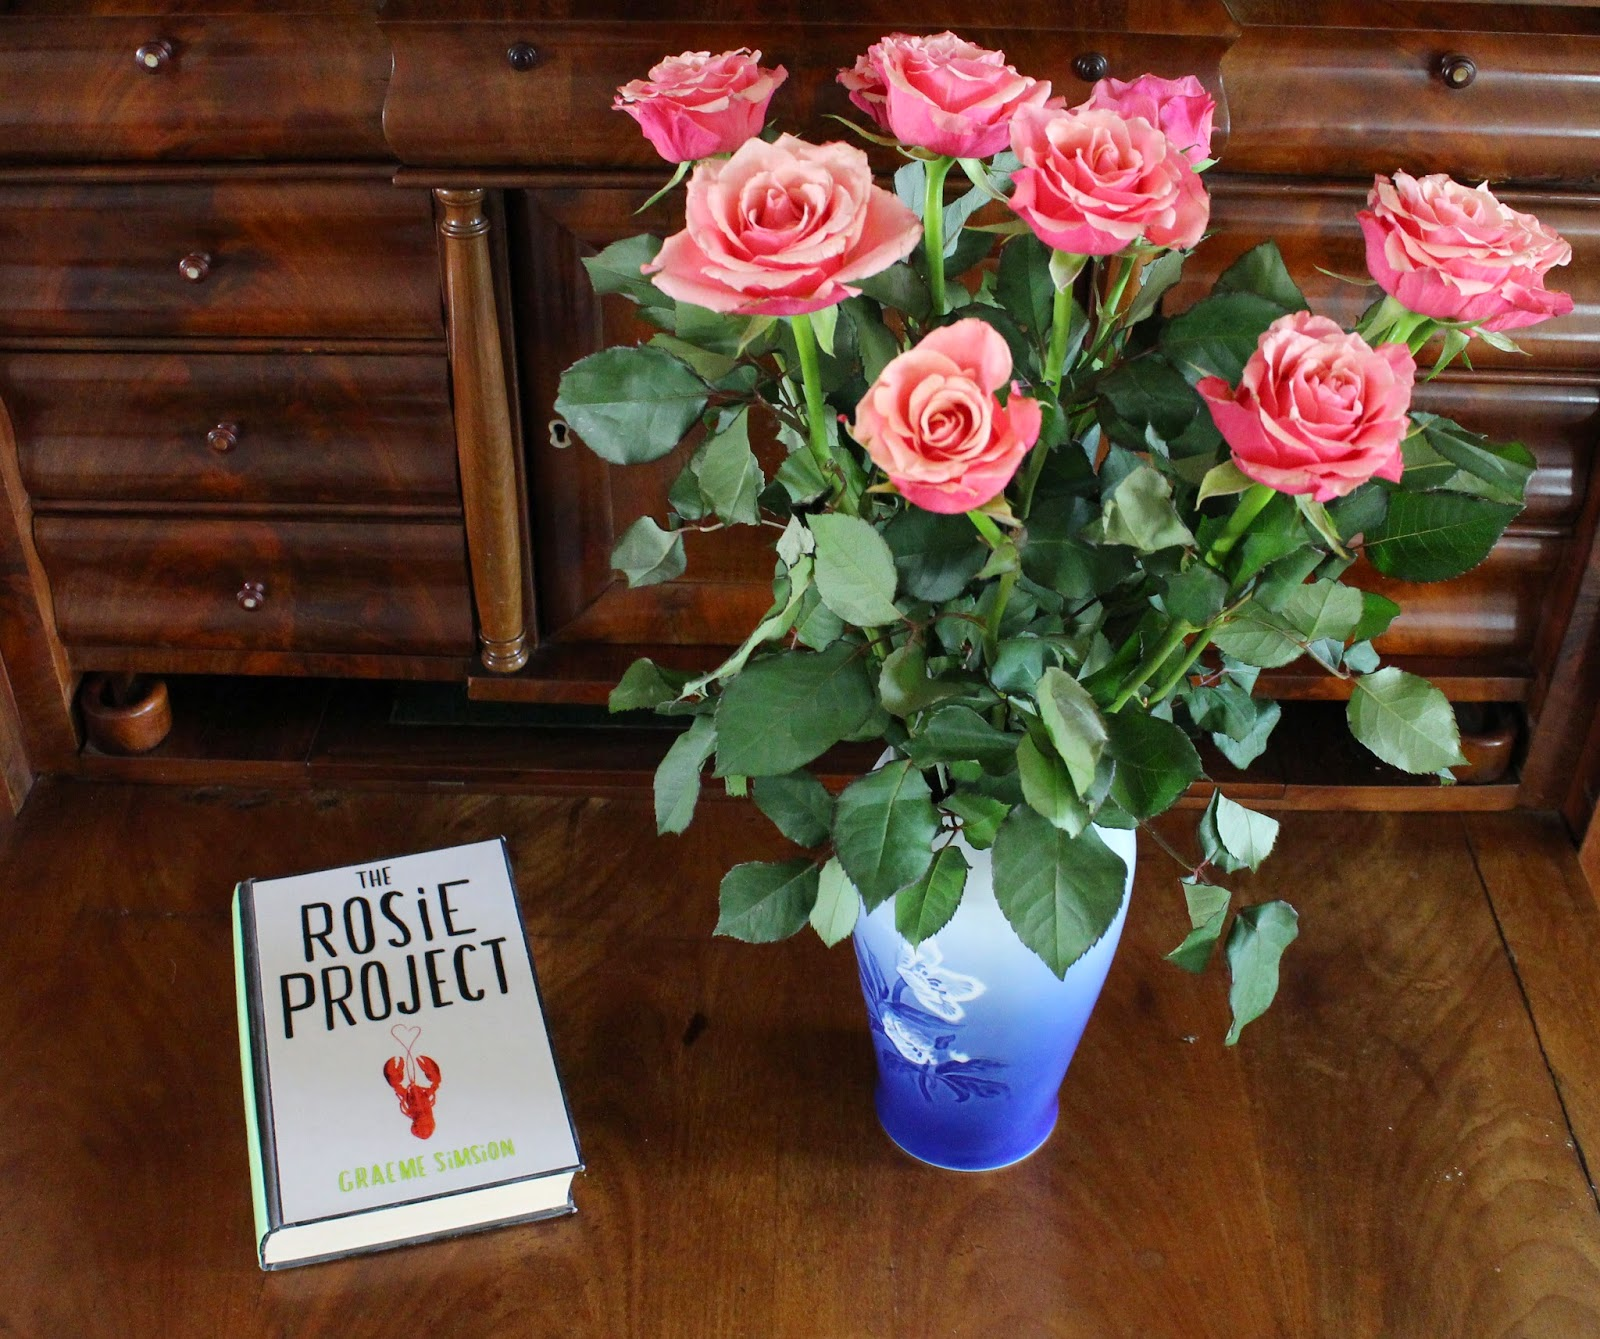 The Rosie Project by Graeme Simsion//Iben Jakobsen